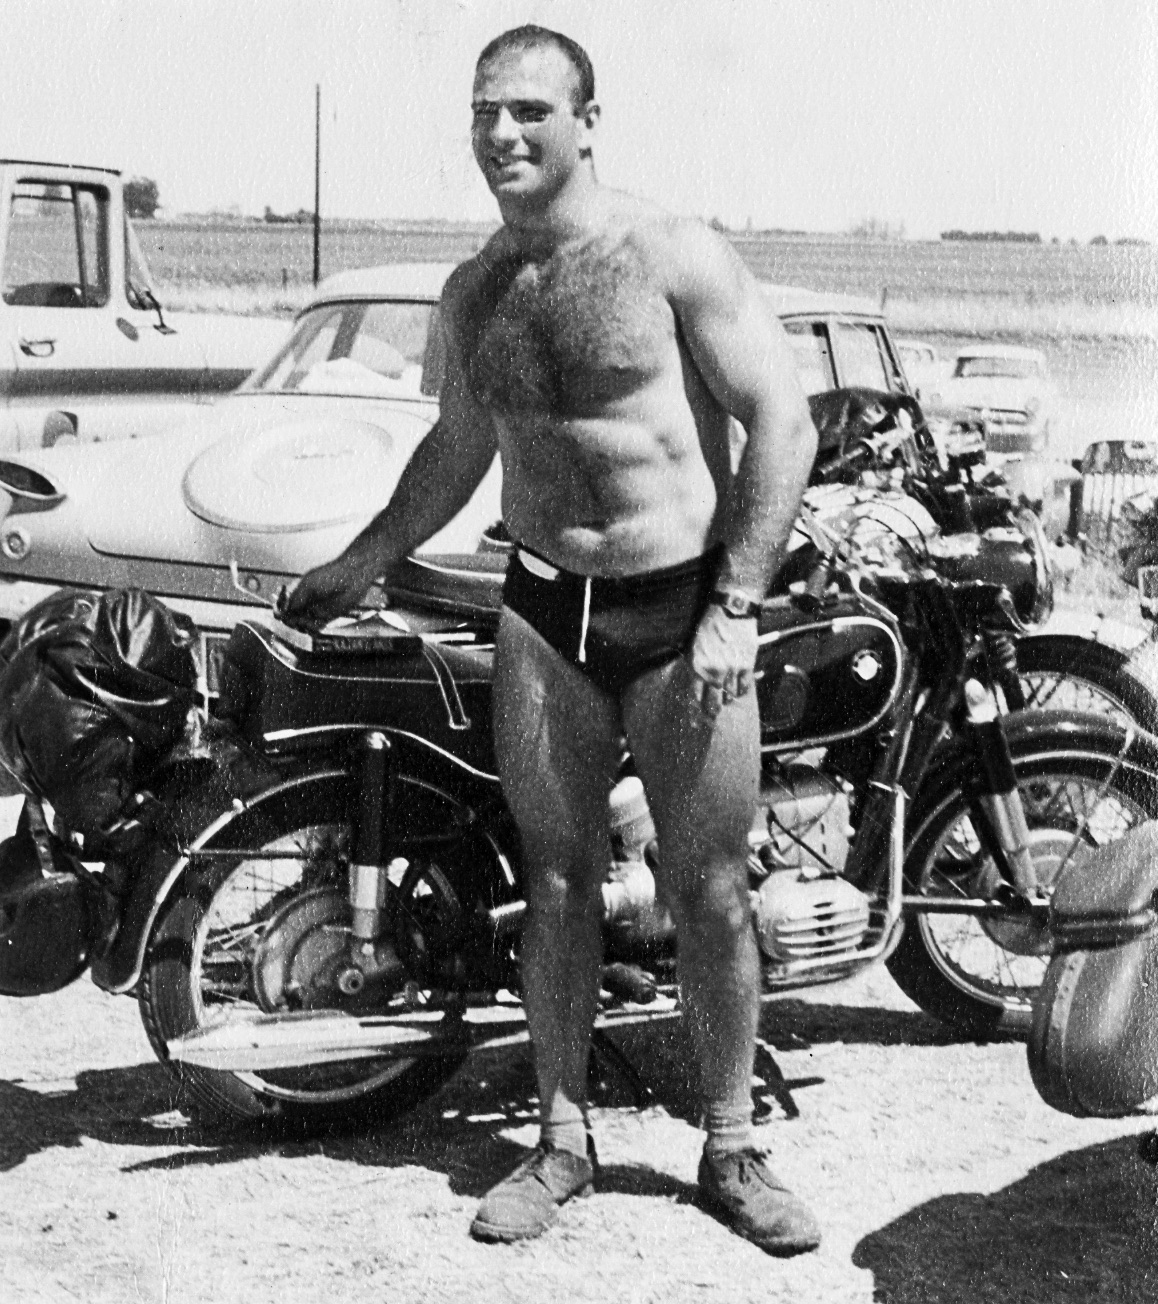 A muscled Sacks and his beloved BMW motorbike at Muscle Beach. Photo courtesy of the Oliver Sacks Foundation.